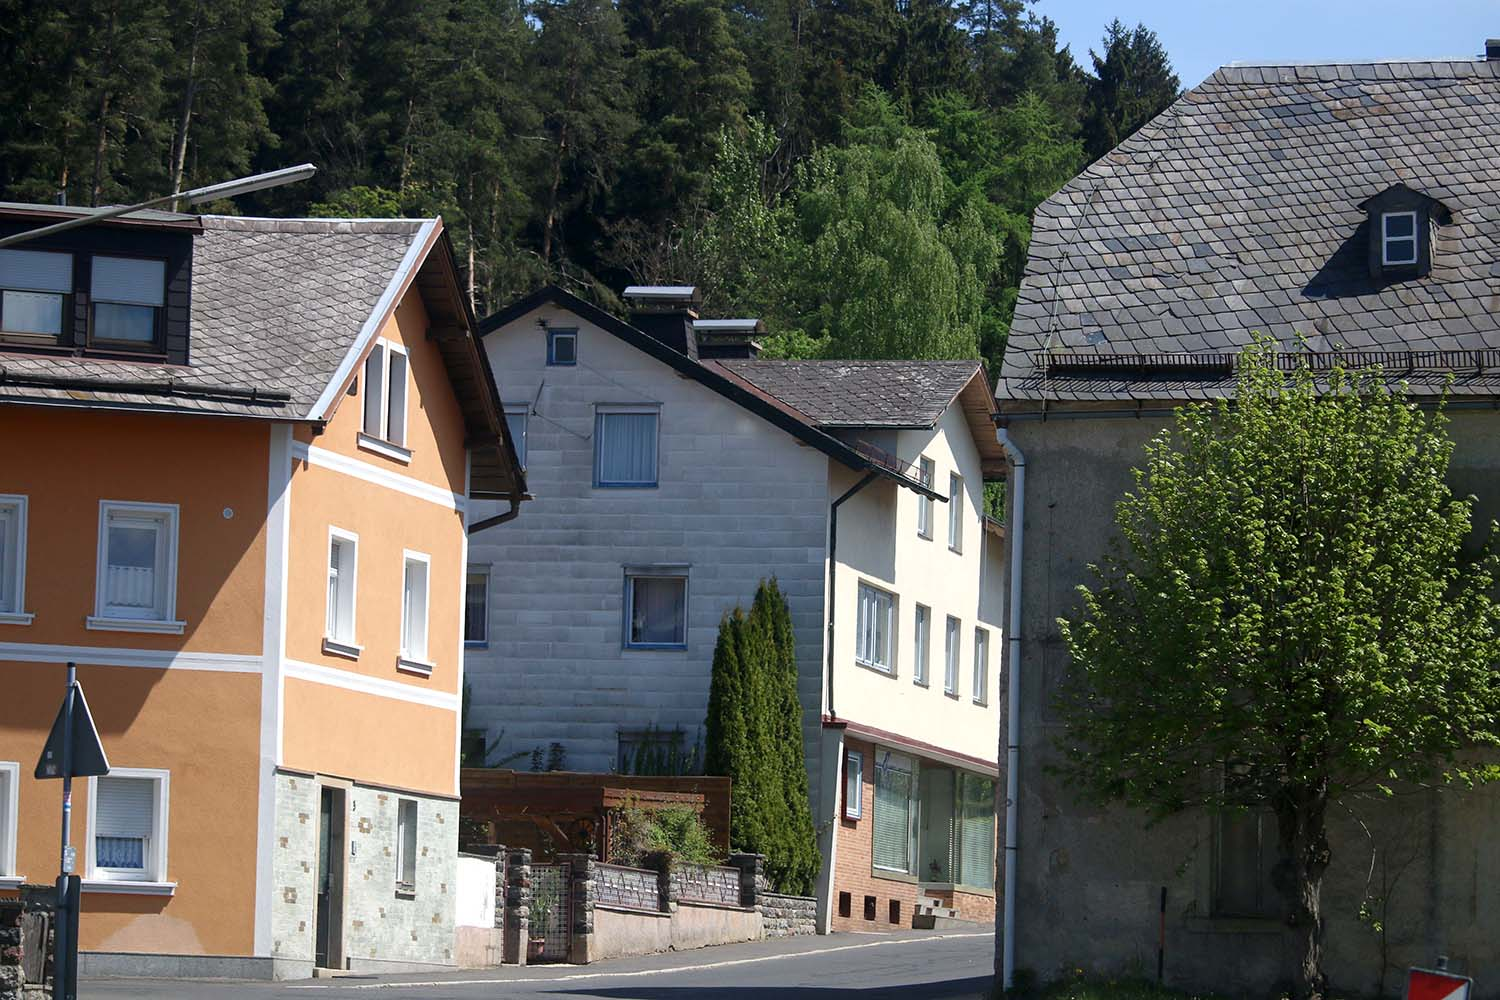 The white house where my Opa lives in a little Village called Niederlamitz, Germany.